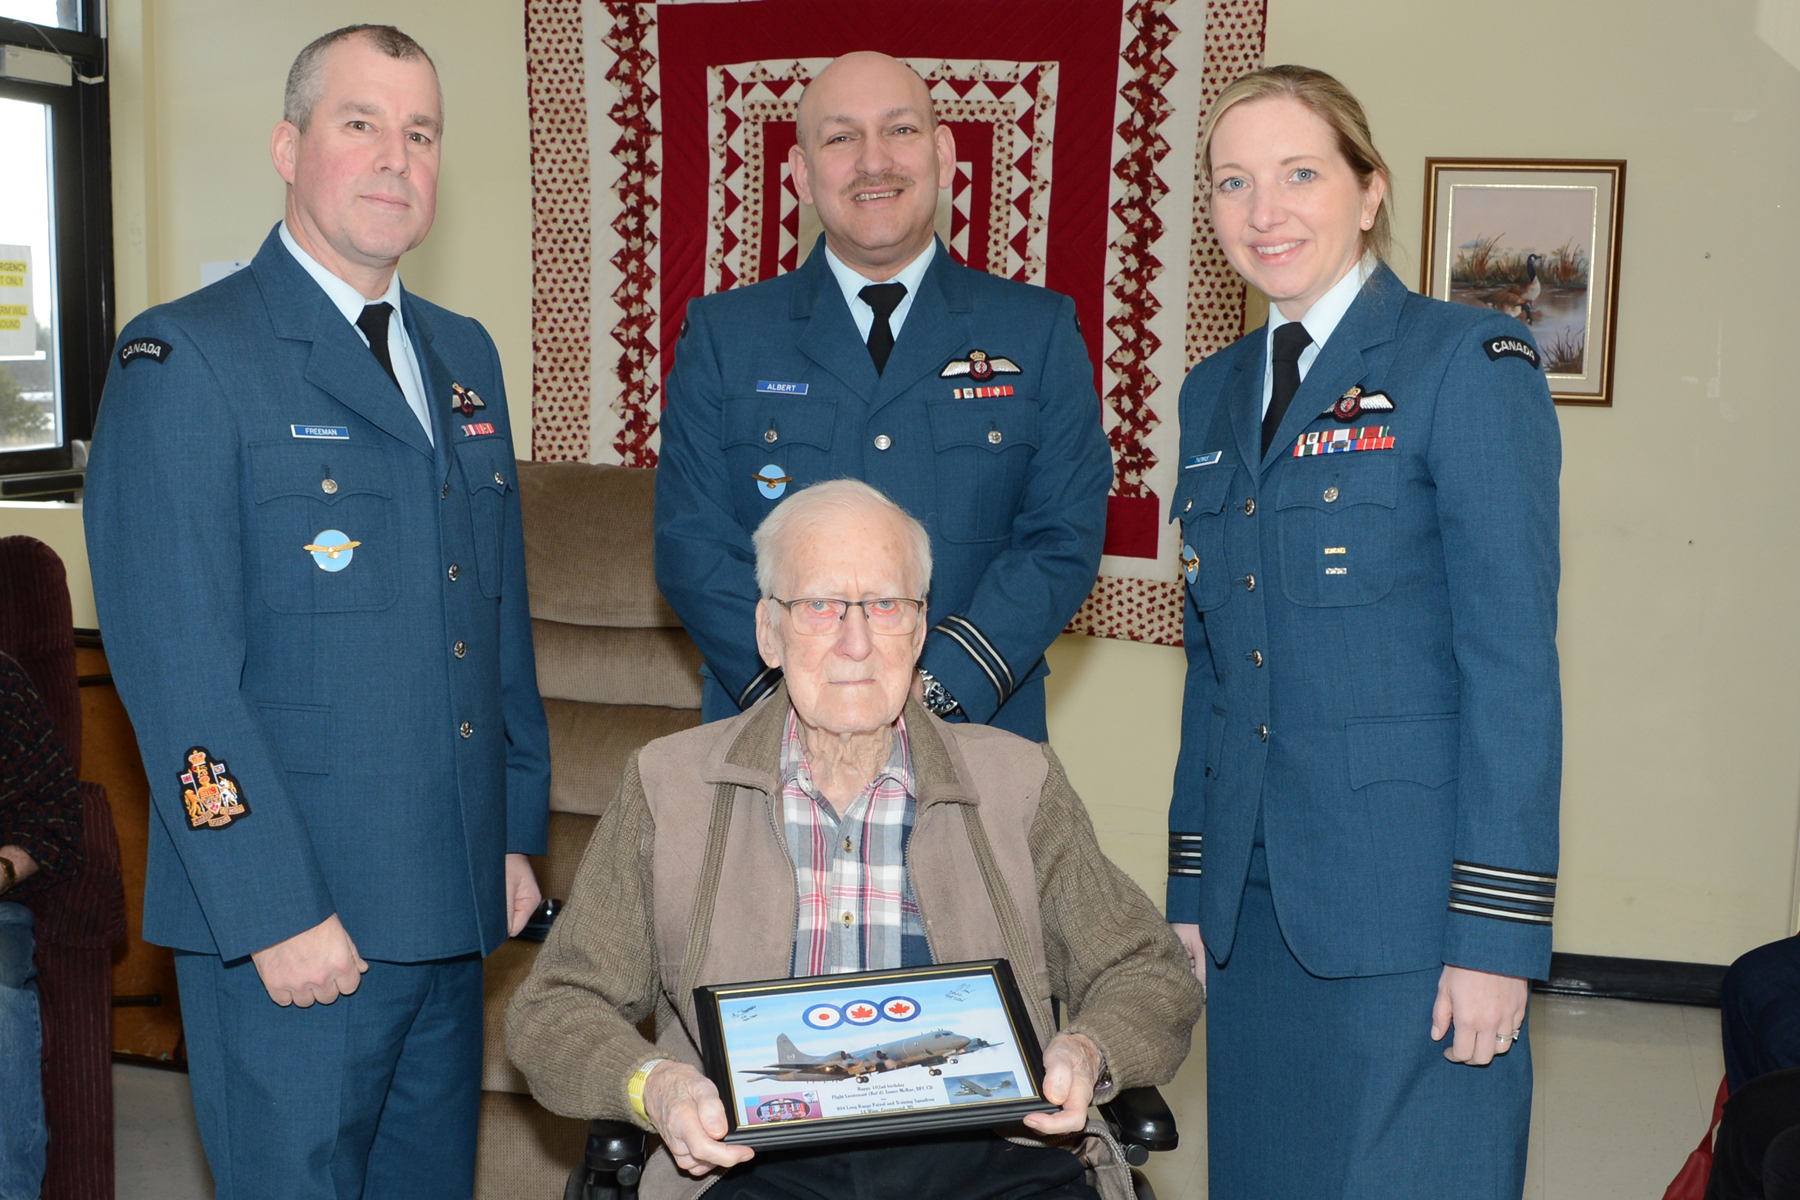 Three people, two men and a woman, all wearing blue Air Force uniforms, stand behind an elderly man in a wheelchair wearing civilian clothes and holding a framed picture.